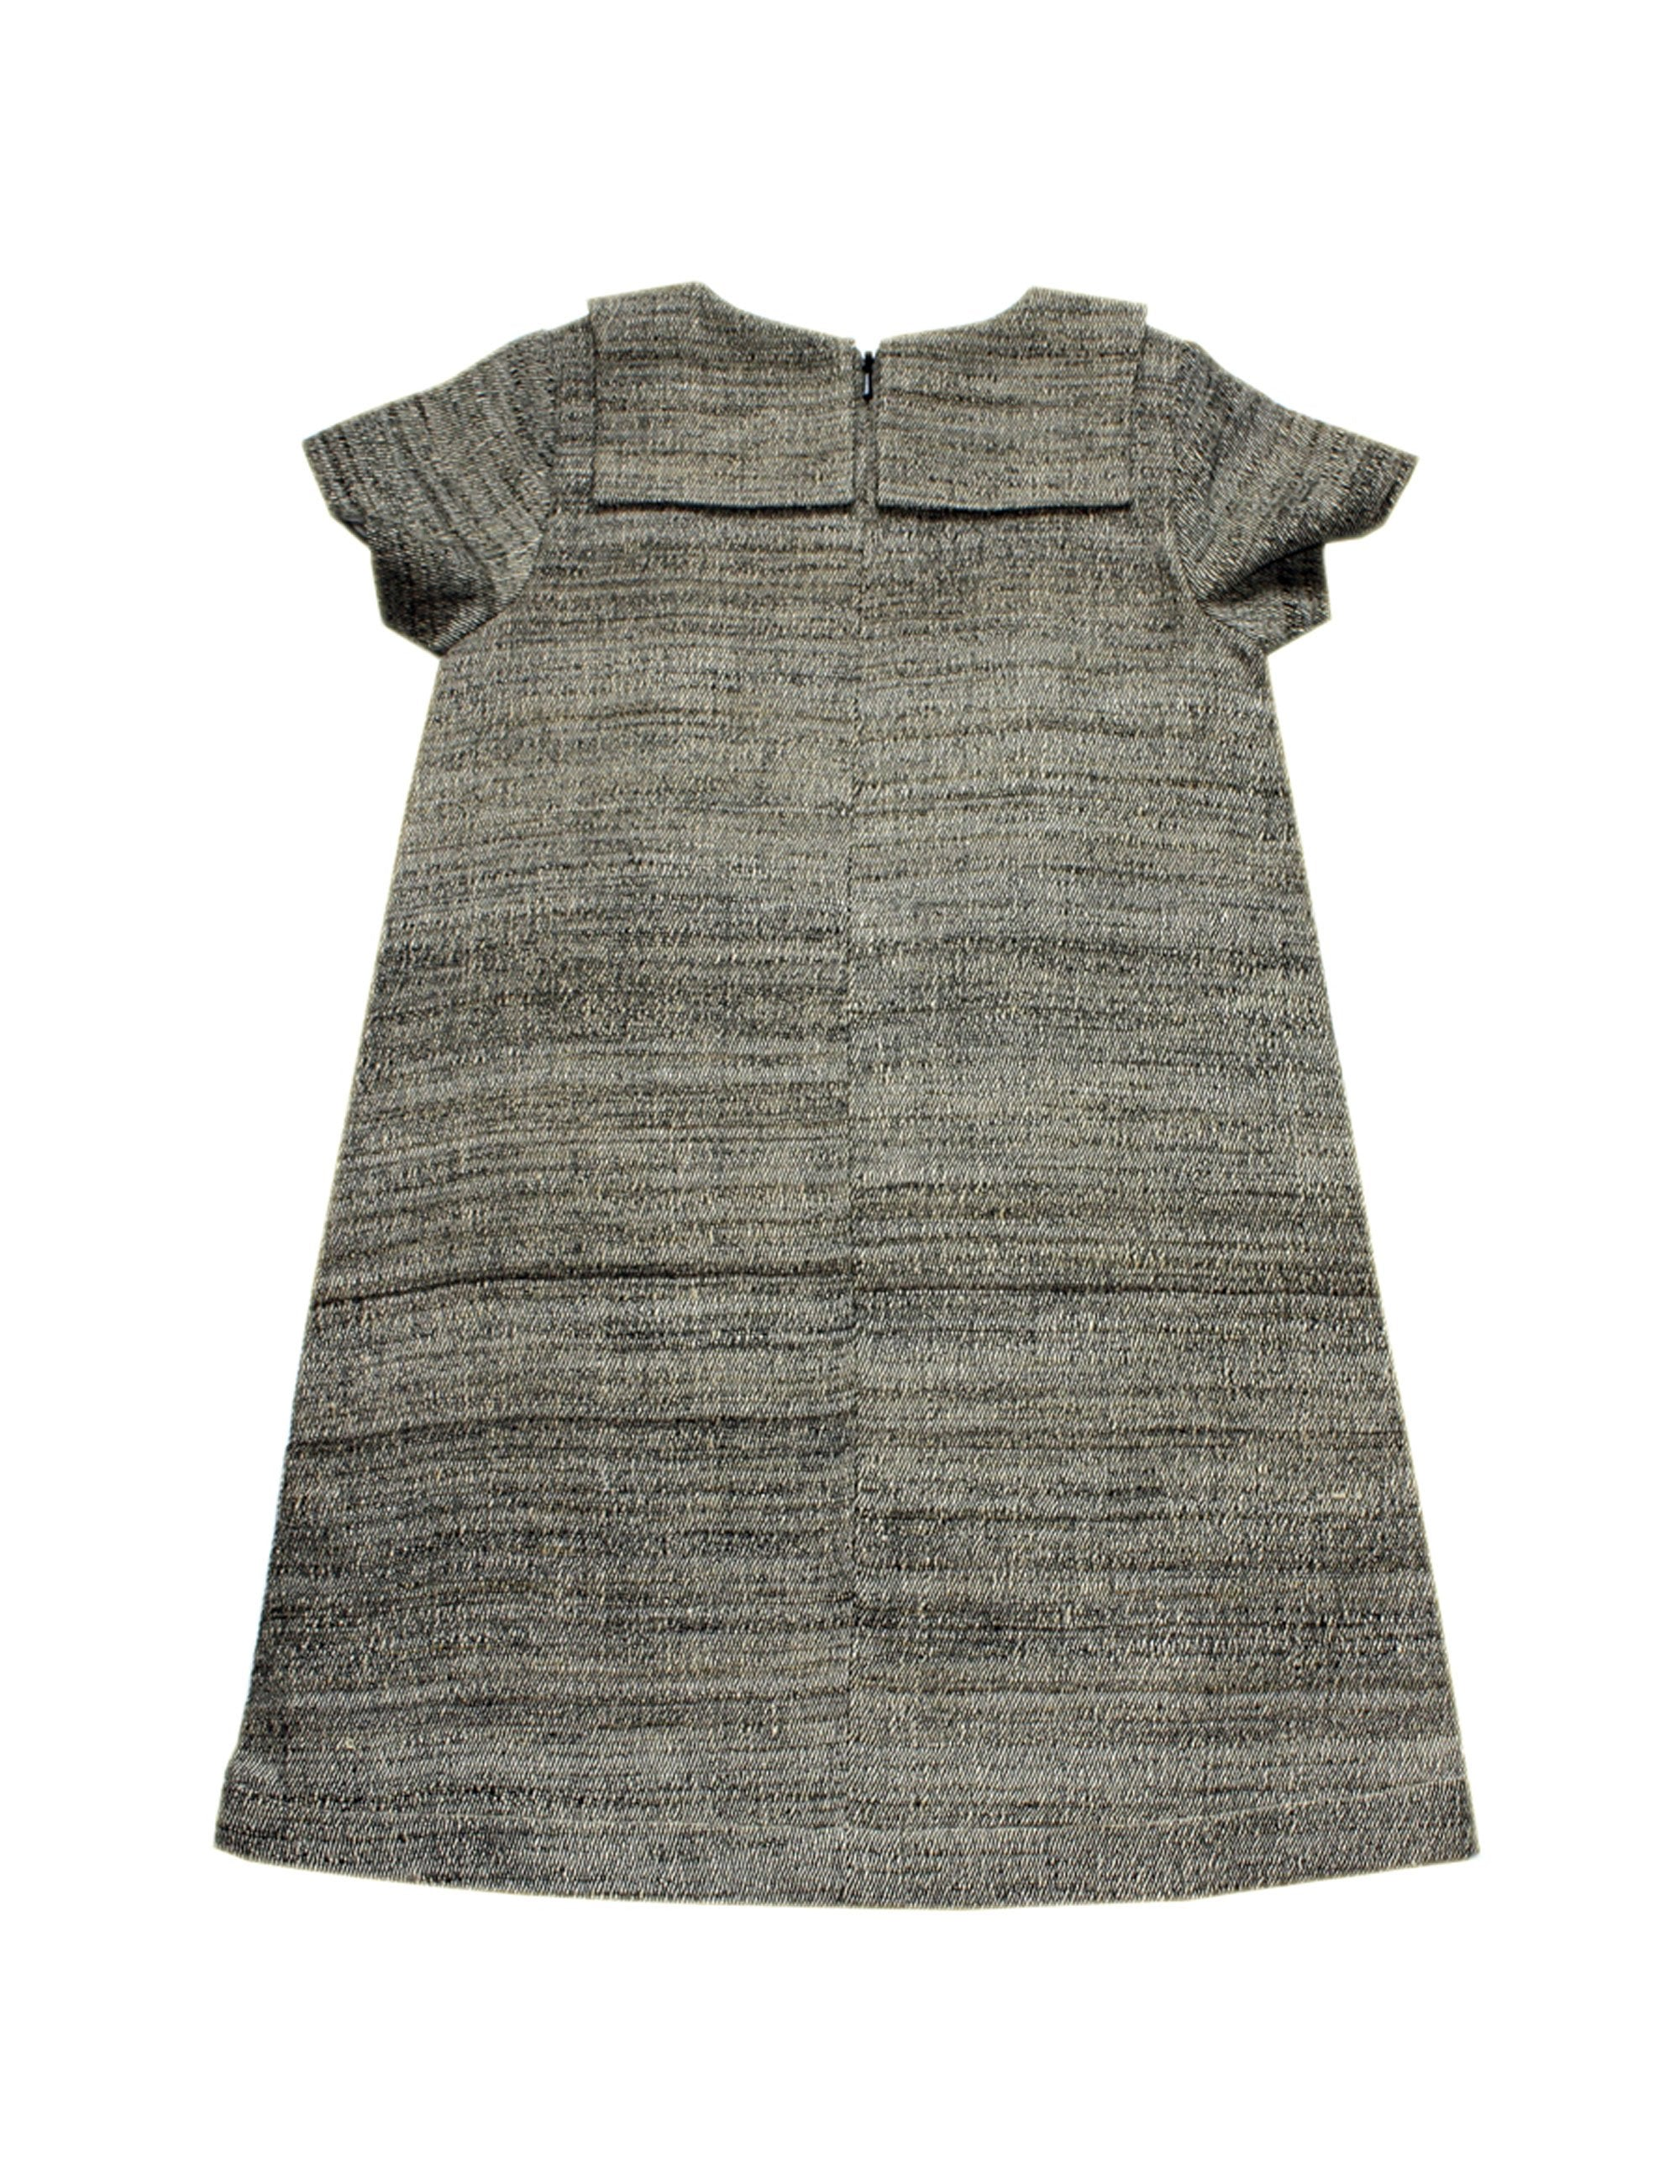 Jute Dress in Grey Colour for Girls